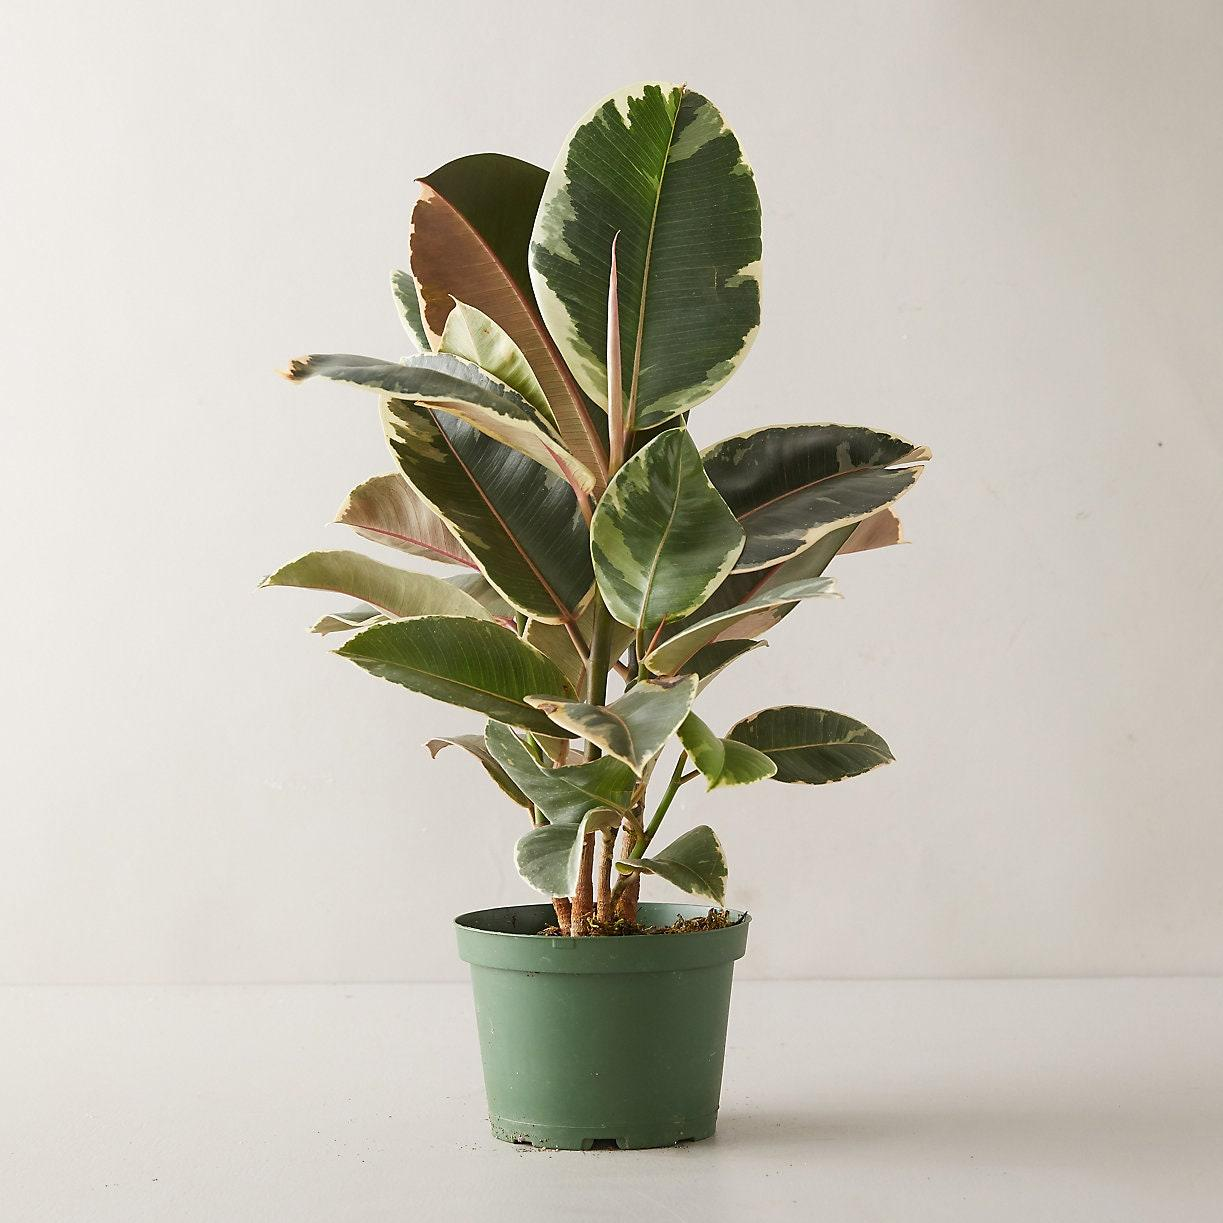 """<p>Whether in burgundy or regular green, rubber trees will produce lots of oxygen—more than any other plant, in fact! In addition to producing oxygen and eliminating air toxins, the rubber tree effectively removes mold spores and bacteria from the air (by up to 60%). Fighting off mold and bacteria is part of the plant's defense mechanism to protect its soil.</p> <p>Rubber trees filter toxins including:</p> <p>- formaldehyde</p> $48, Terrain. <a href=""""https://www.shopterrain.com/products/tineke-ruby-ficus-plant"""" rel=""""nofollow noopener"""" target=""""_blank"""" data-ylk=""""slk:Get it now!"""" class=""""link rapid-noclick-resp"""">Get it now!</a>"""